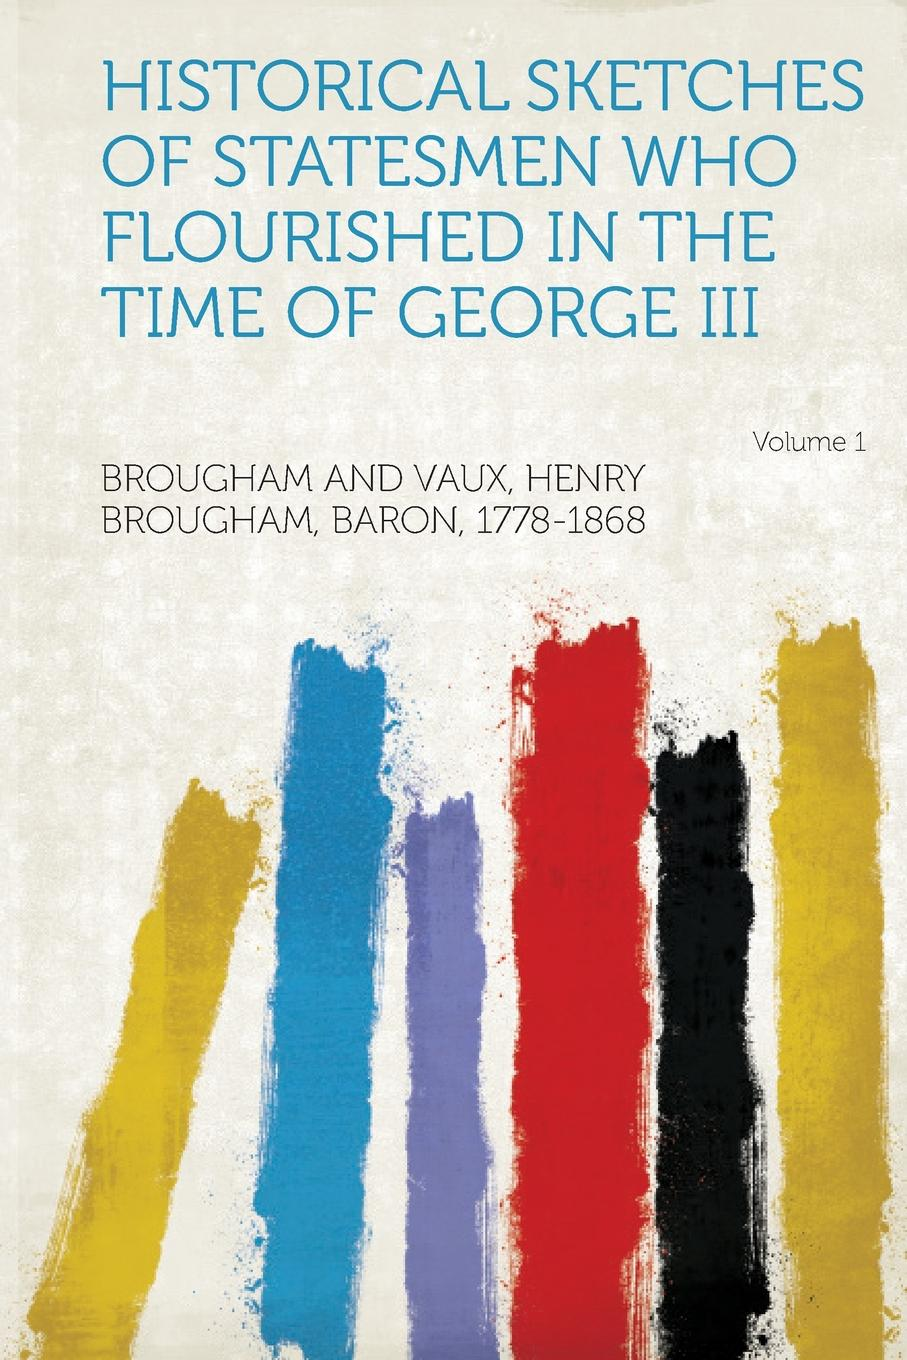 Brougham and Vaux Henry Brou 1778-1868 Historical Sketches of Statesmen Who Flourished in the Time of George III Volume 1